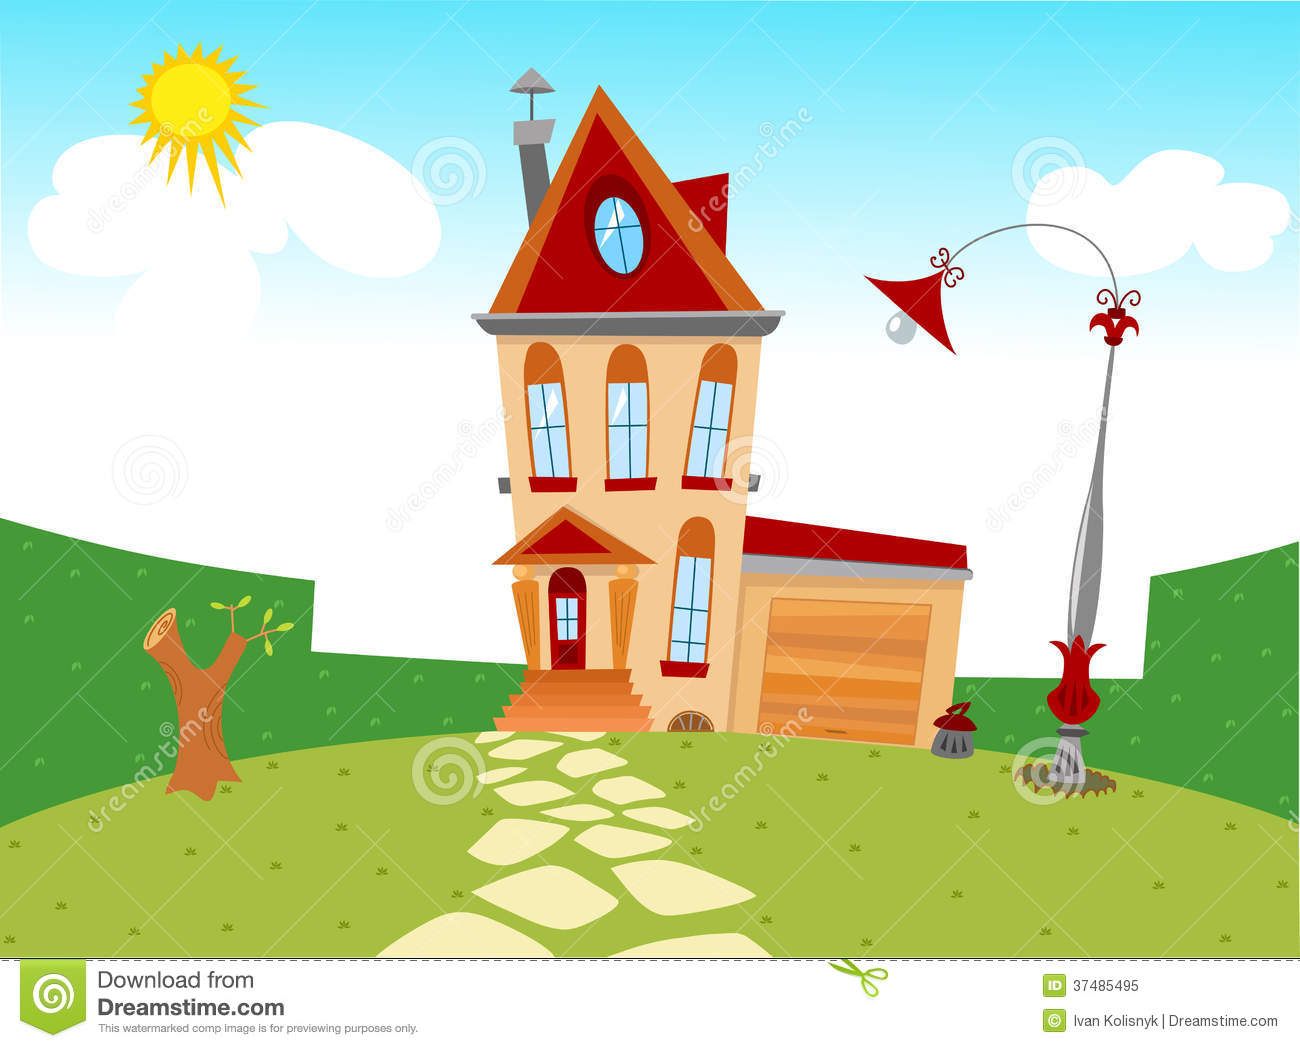 Inside front door clipart - Tiny Cartoon House Royalty Free Stock Photo Image 37485495